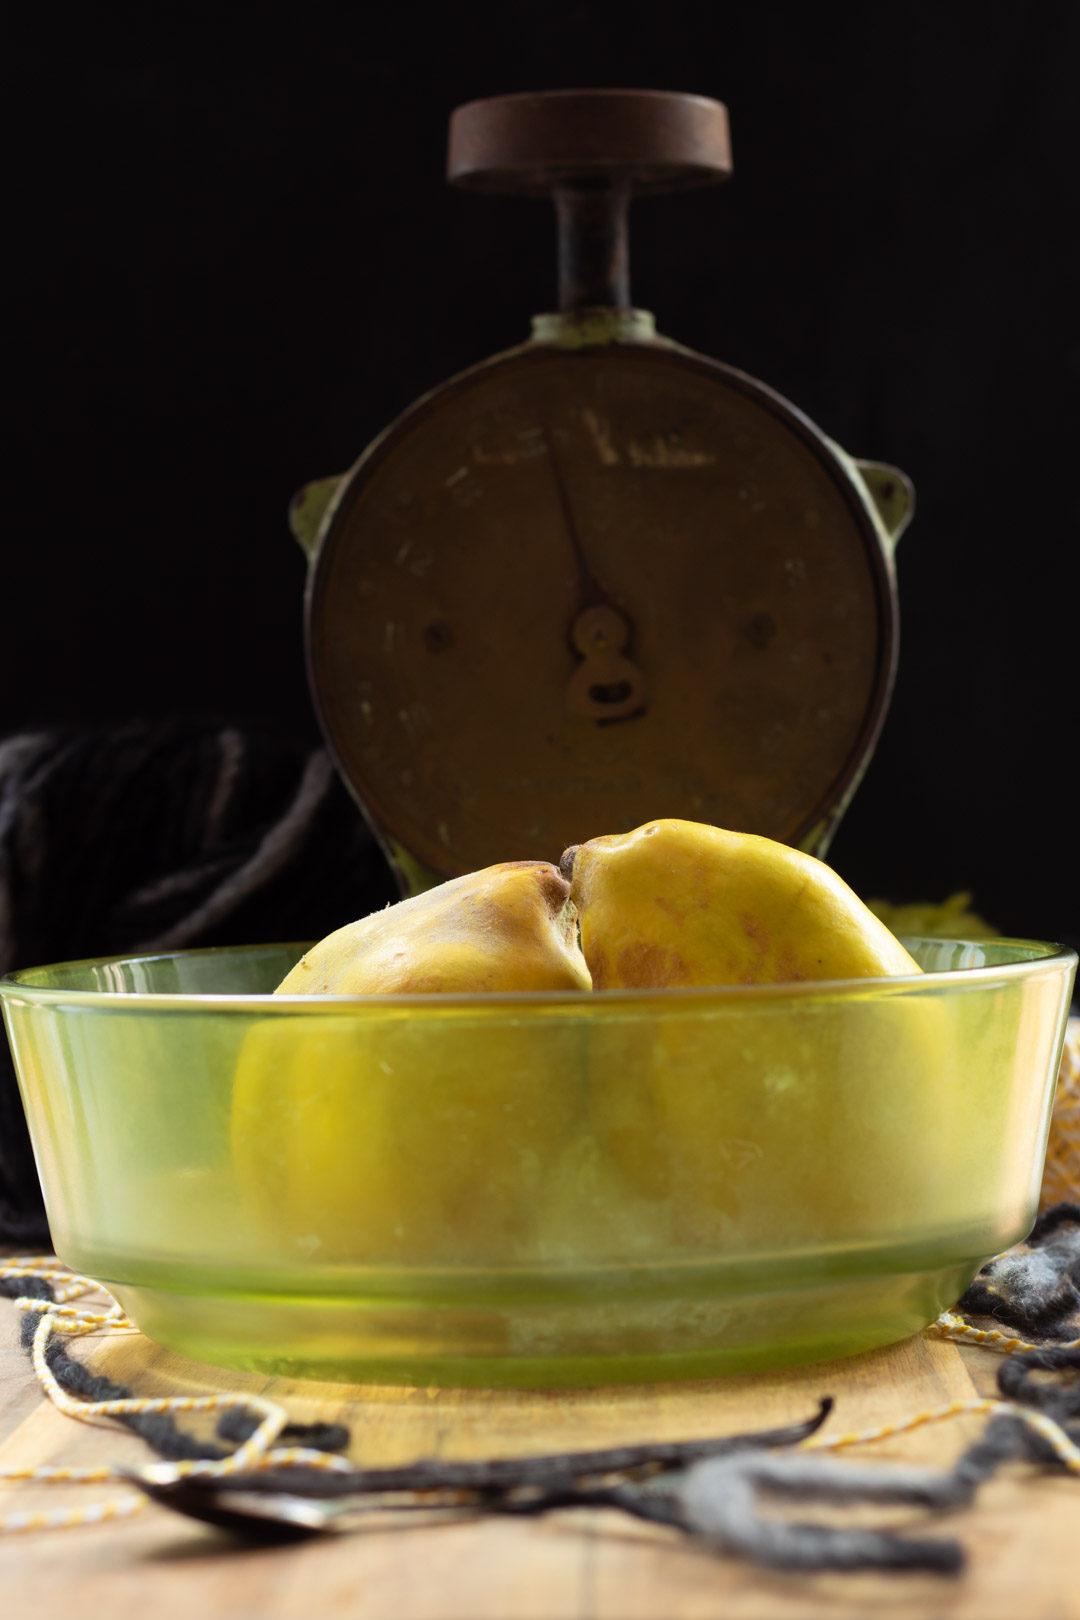 quinces with scale